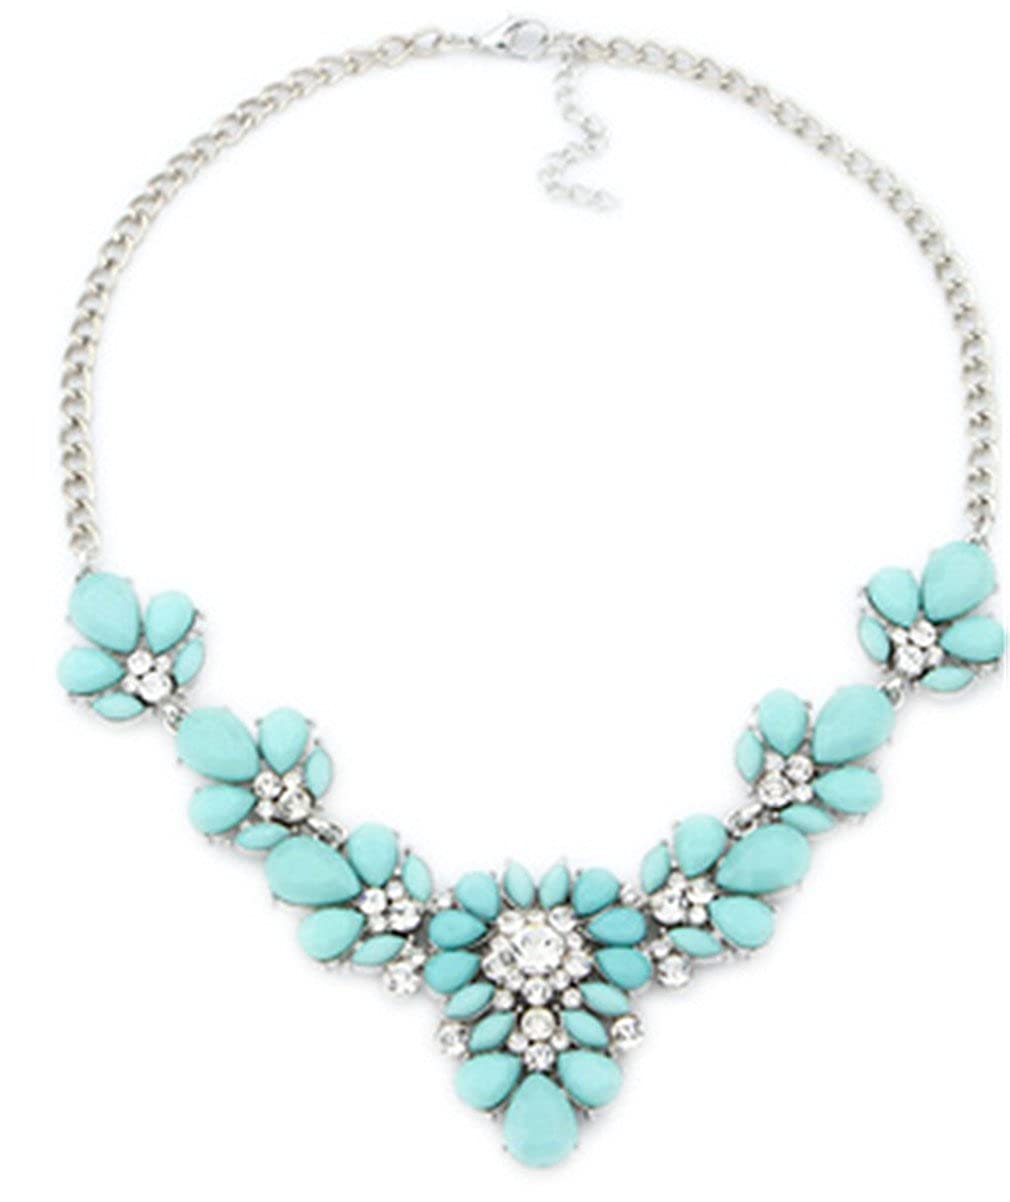 HUAYUQING Fashion Statement Necklaces /& Pendants For Women Collier Femme Vintage Necklace